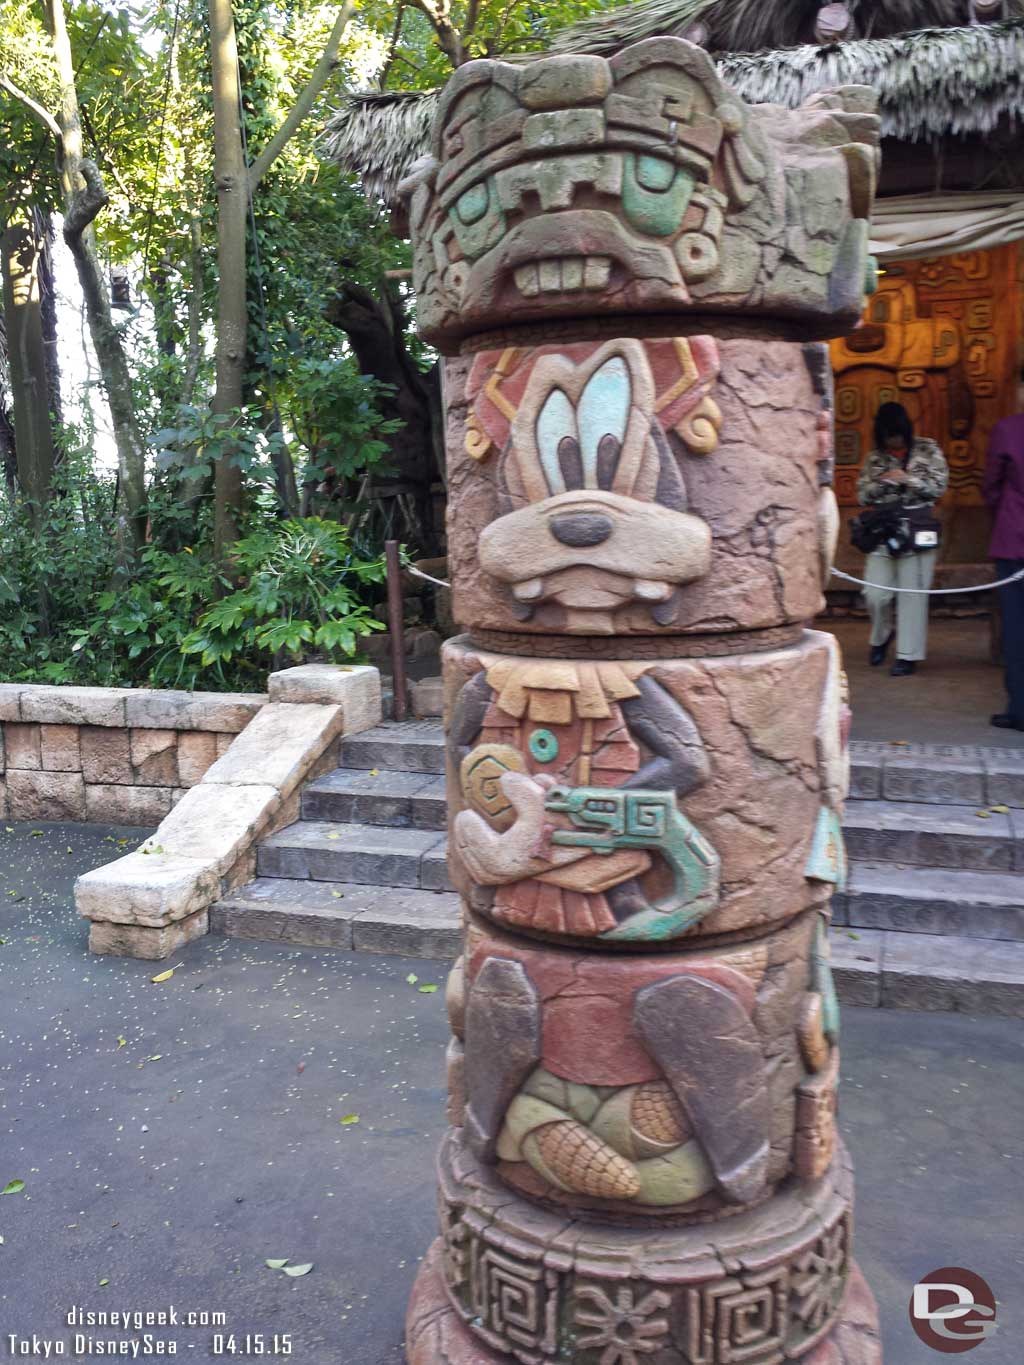 A Goofy column in the character area of the Lost River Delta #TokyoDisneySea